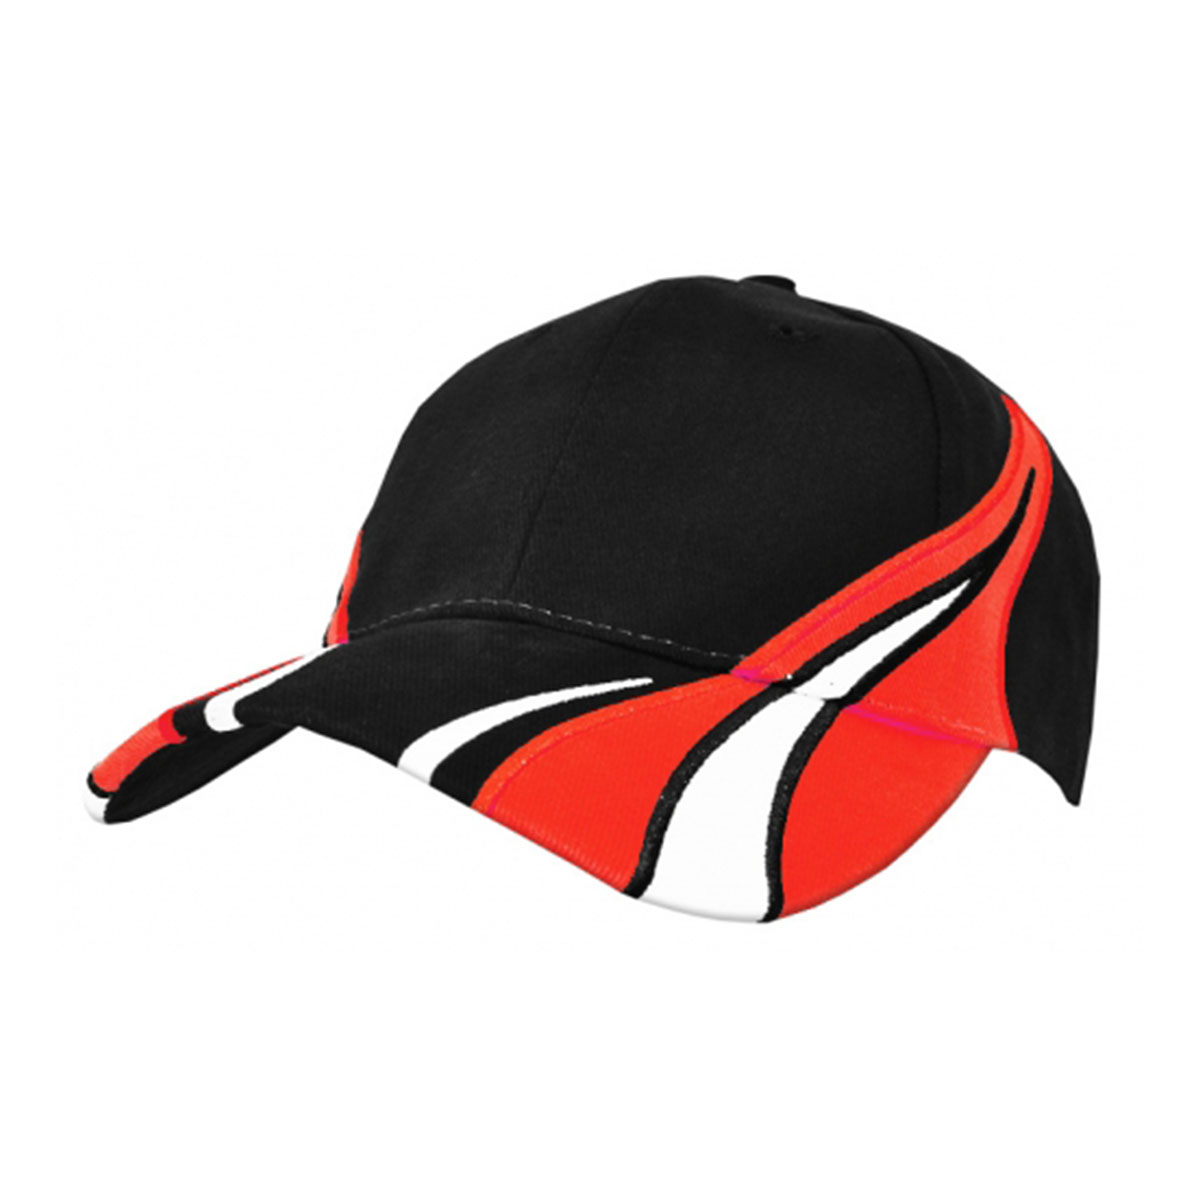 Viper Cap-Black / White / Red